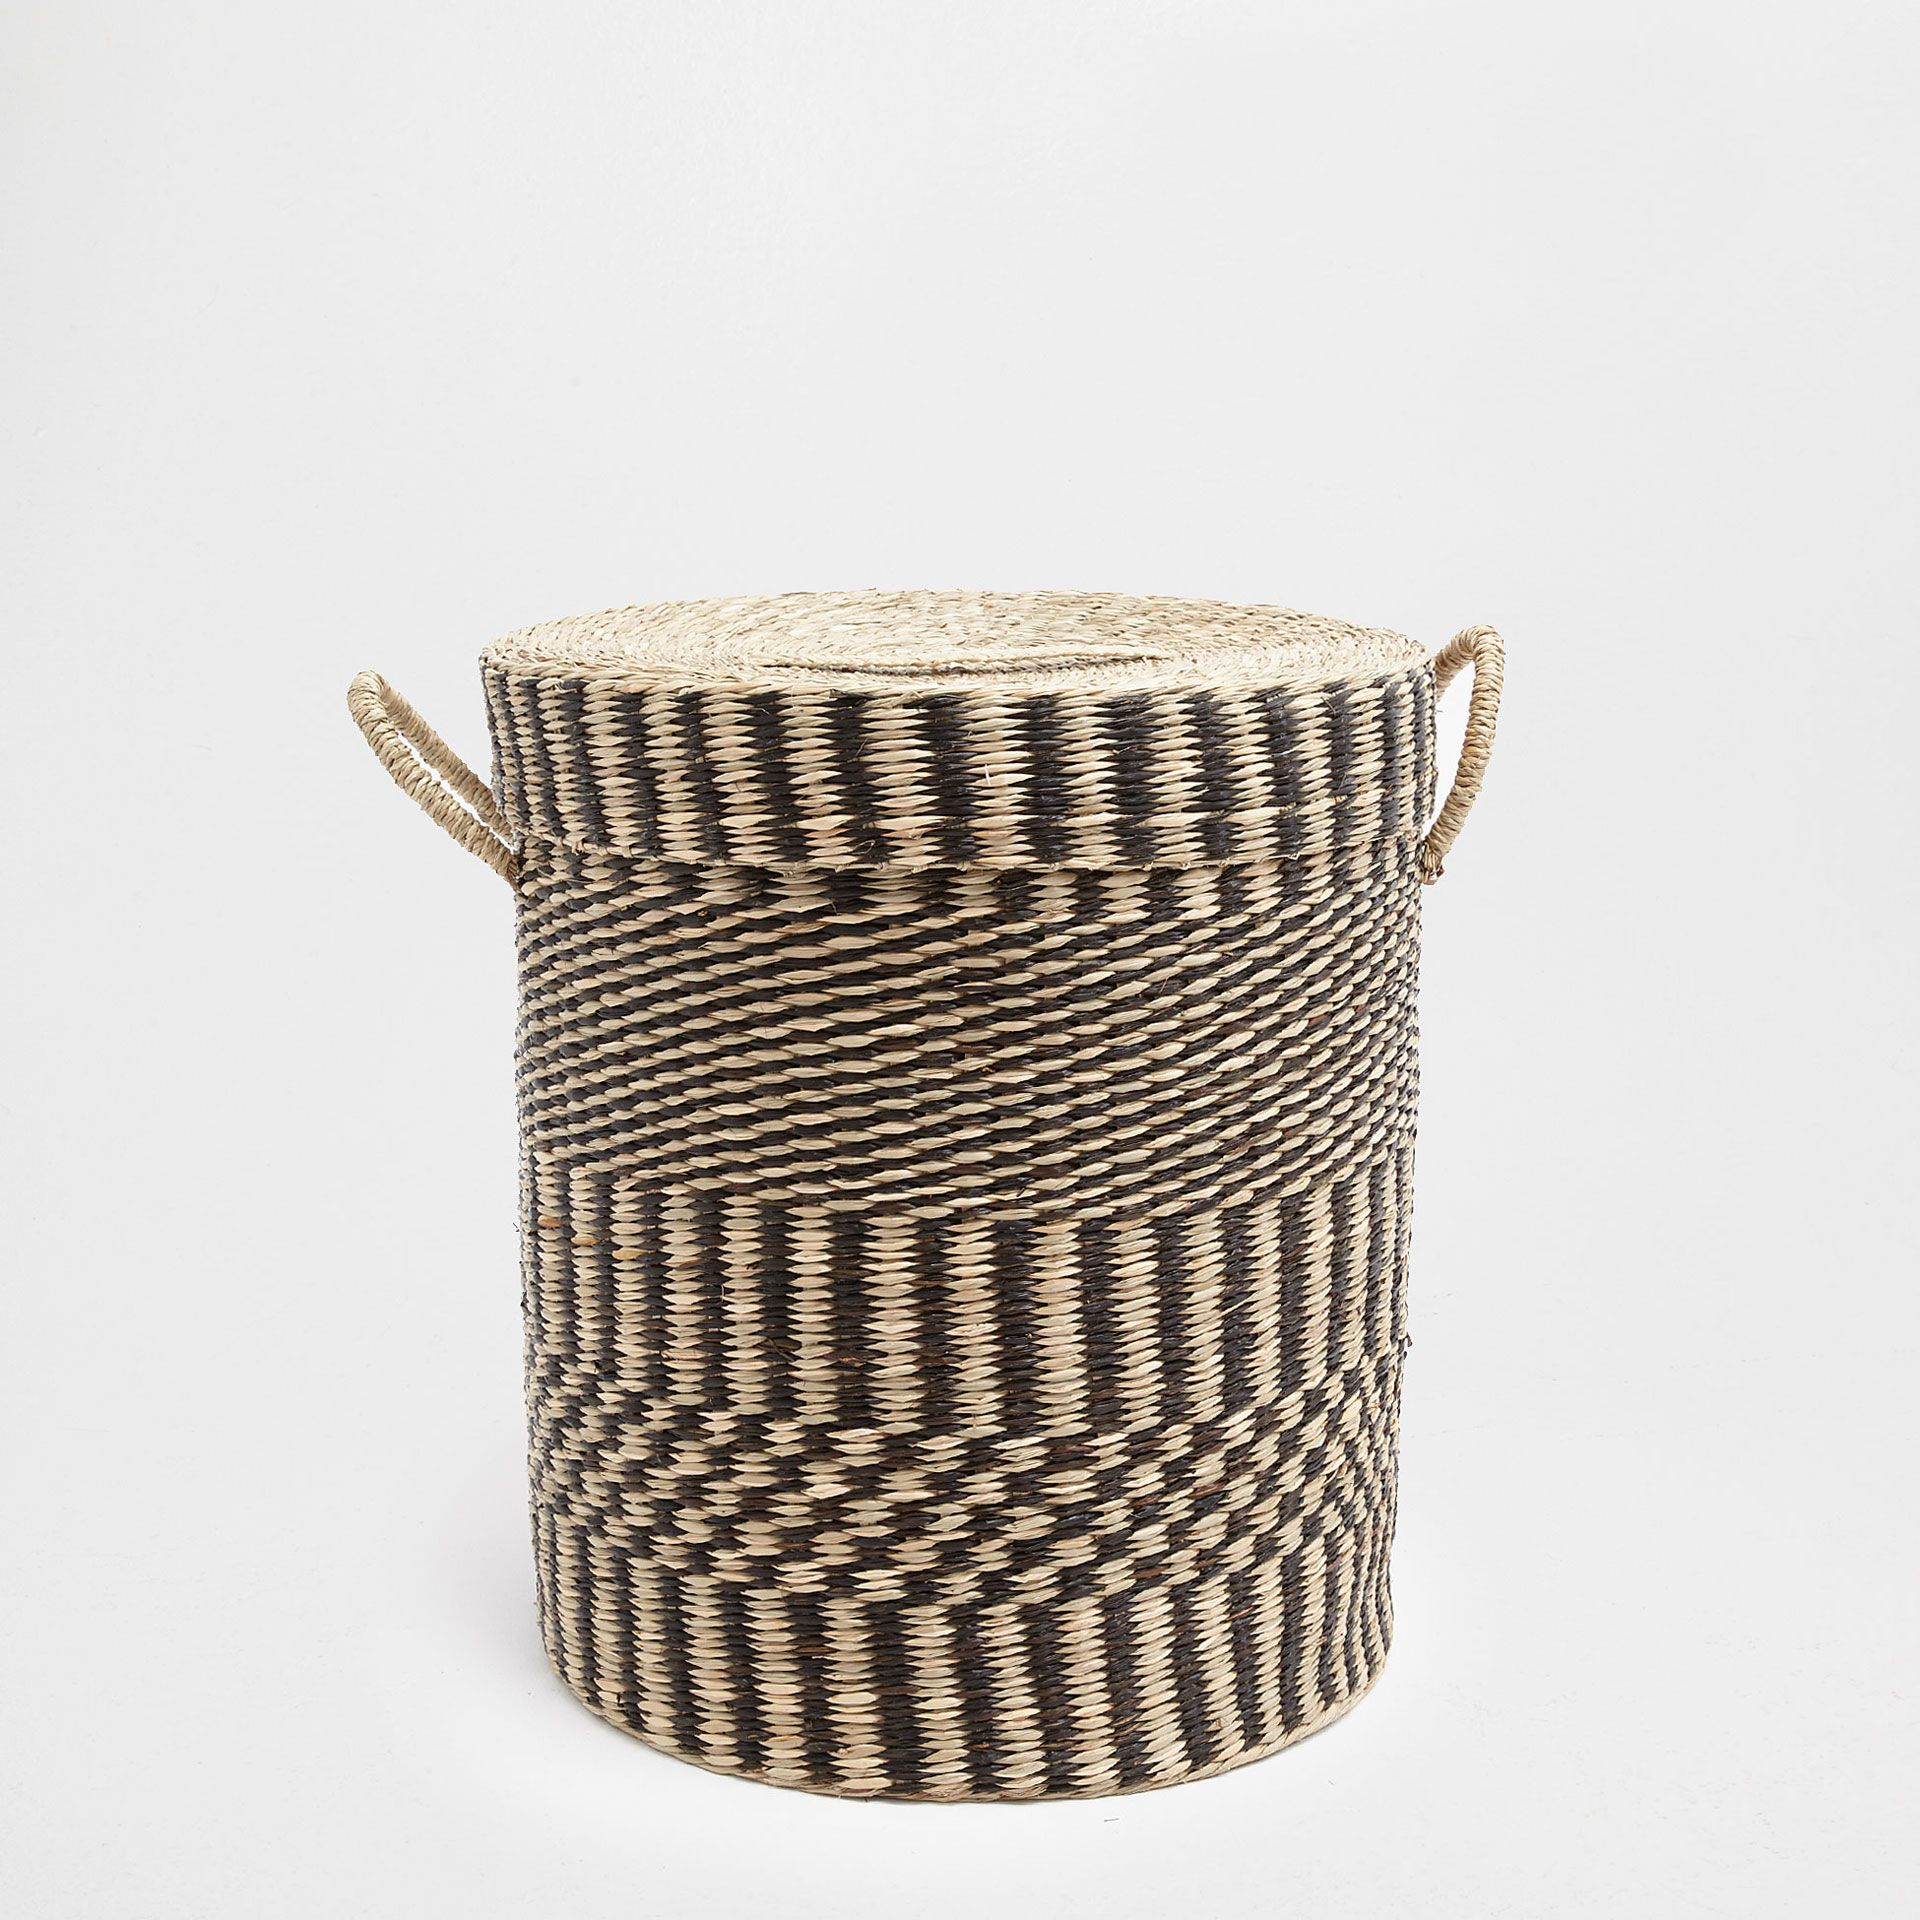 Two Tone Clothes Basket With Lid Baskets Bathroom Zara Home Greece Clothes Basket Laundry Basket With Lid Blanket Basket